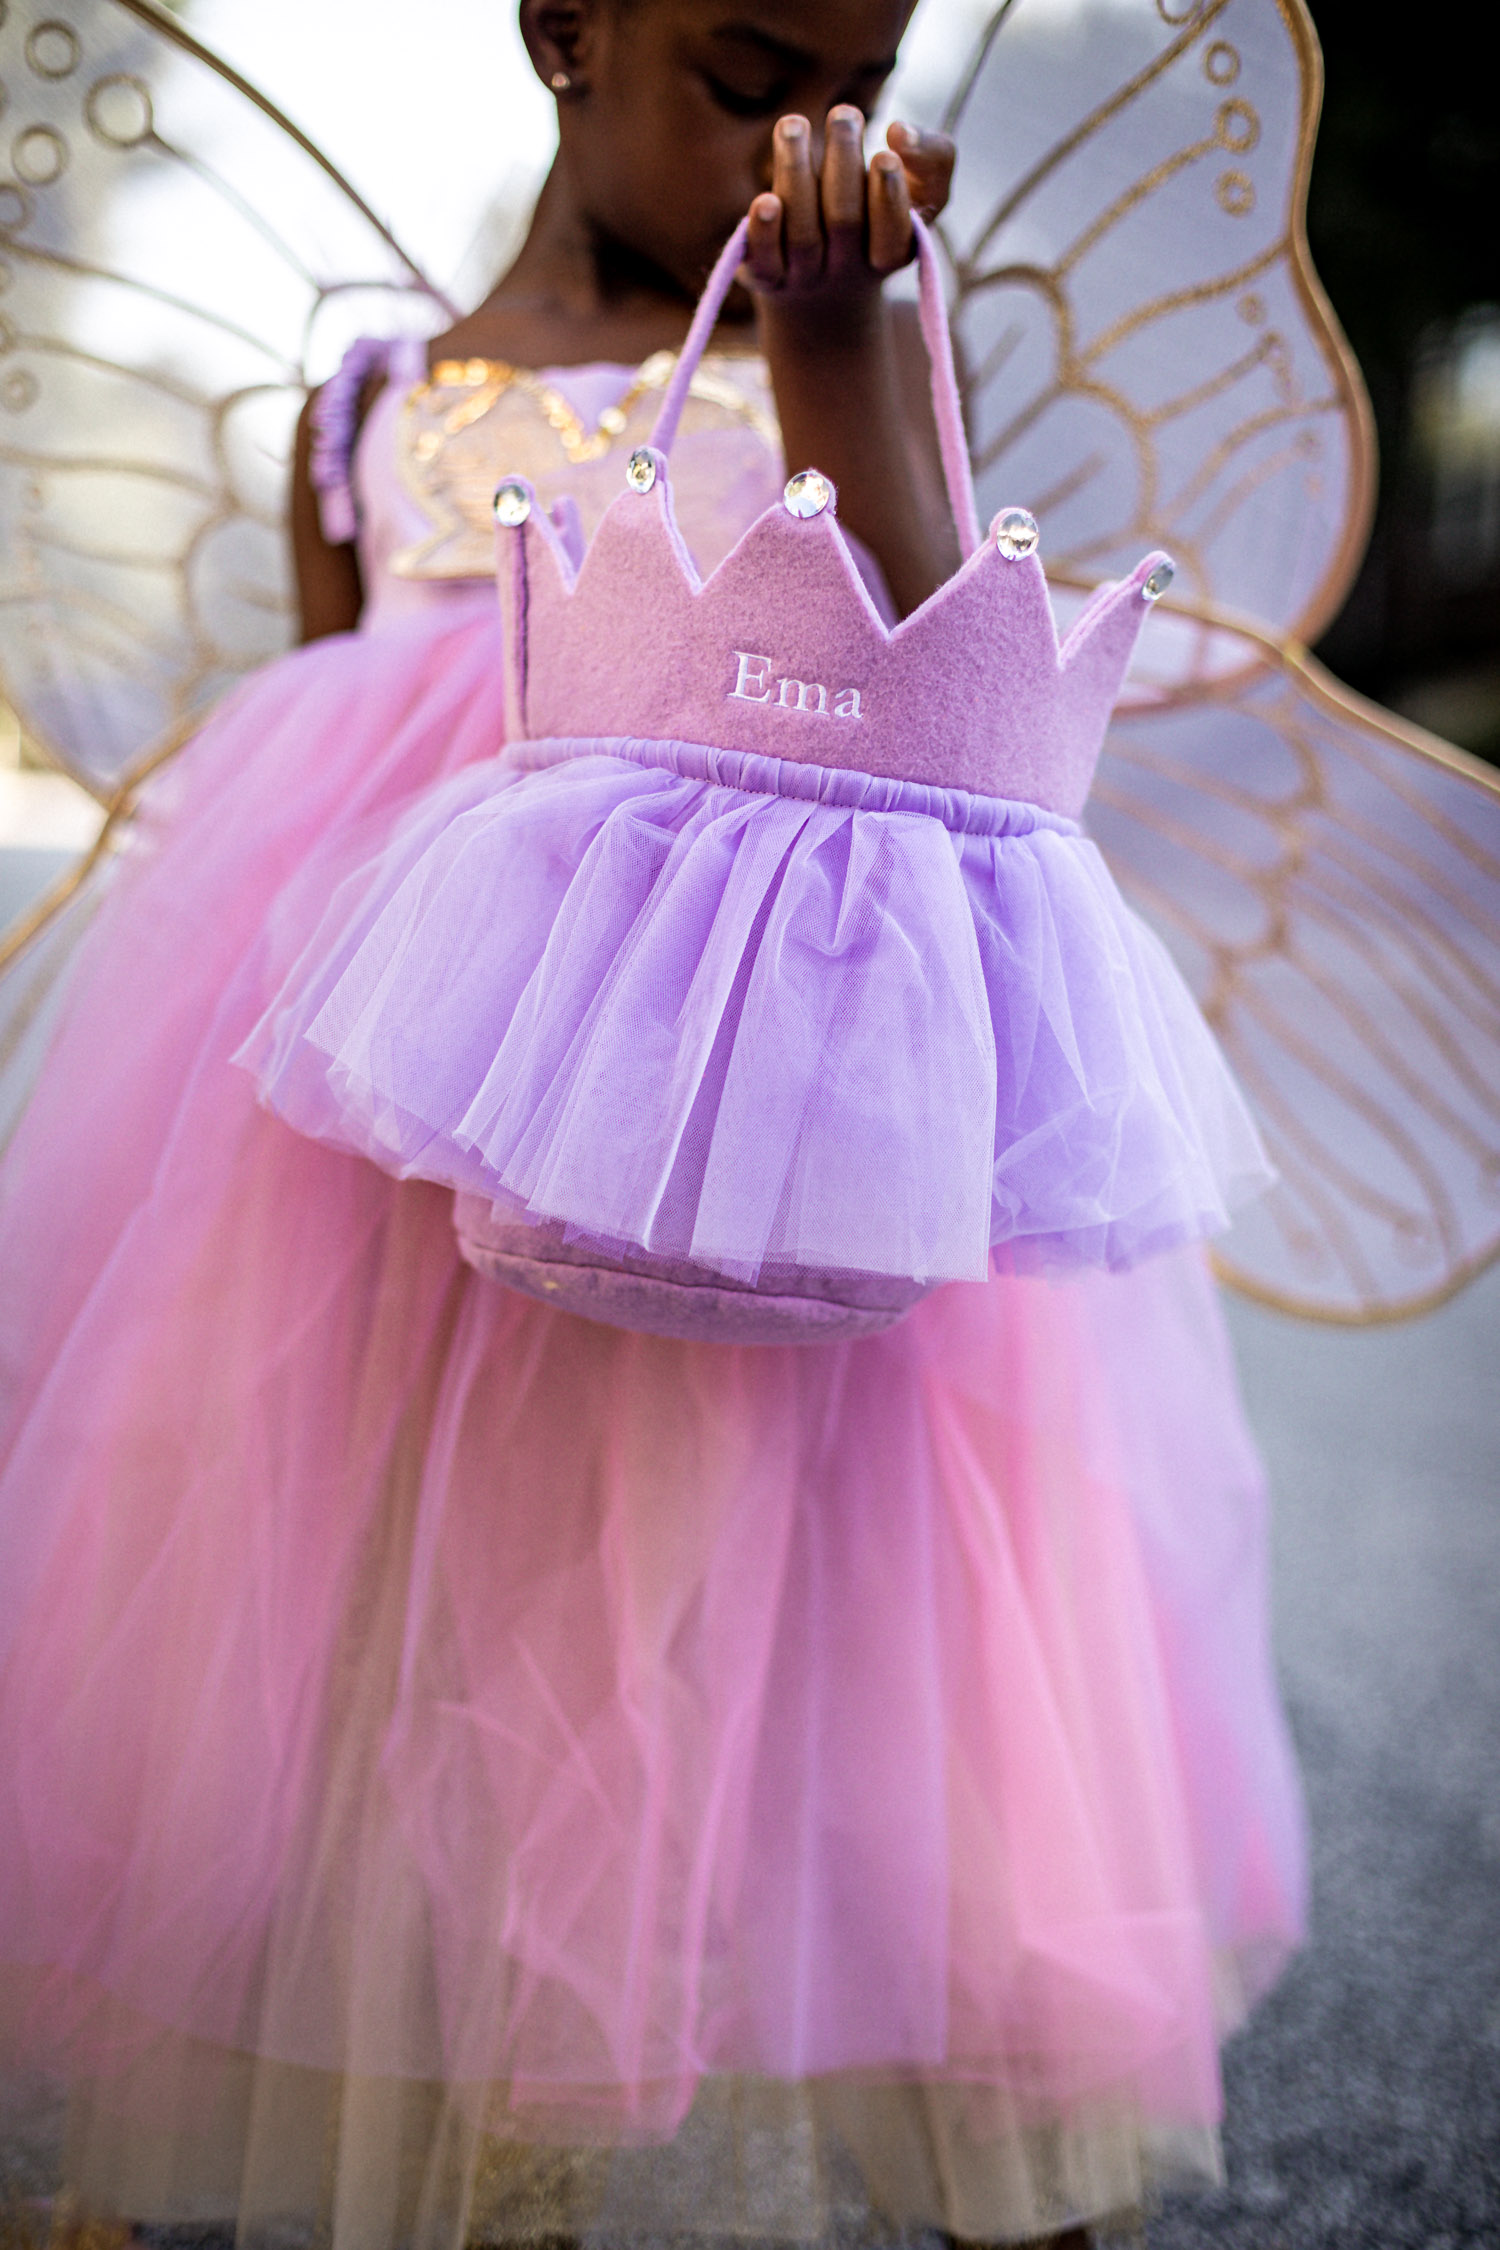 fashion blogger's kids wearing halloween costumes from pottery barn kids, best halloween costumes, panda costume, fairy costume, princess costume, costumes for kids, pottery barn halloween costumes for kids, how to pick the best costumes for kids, kids halloween costumes,